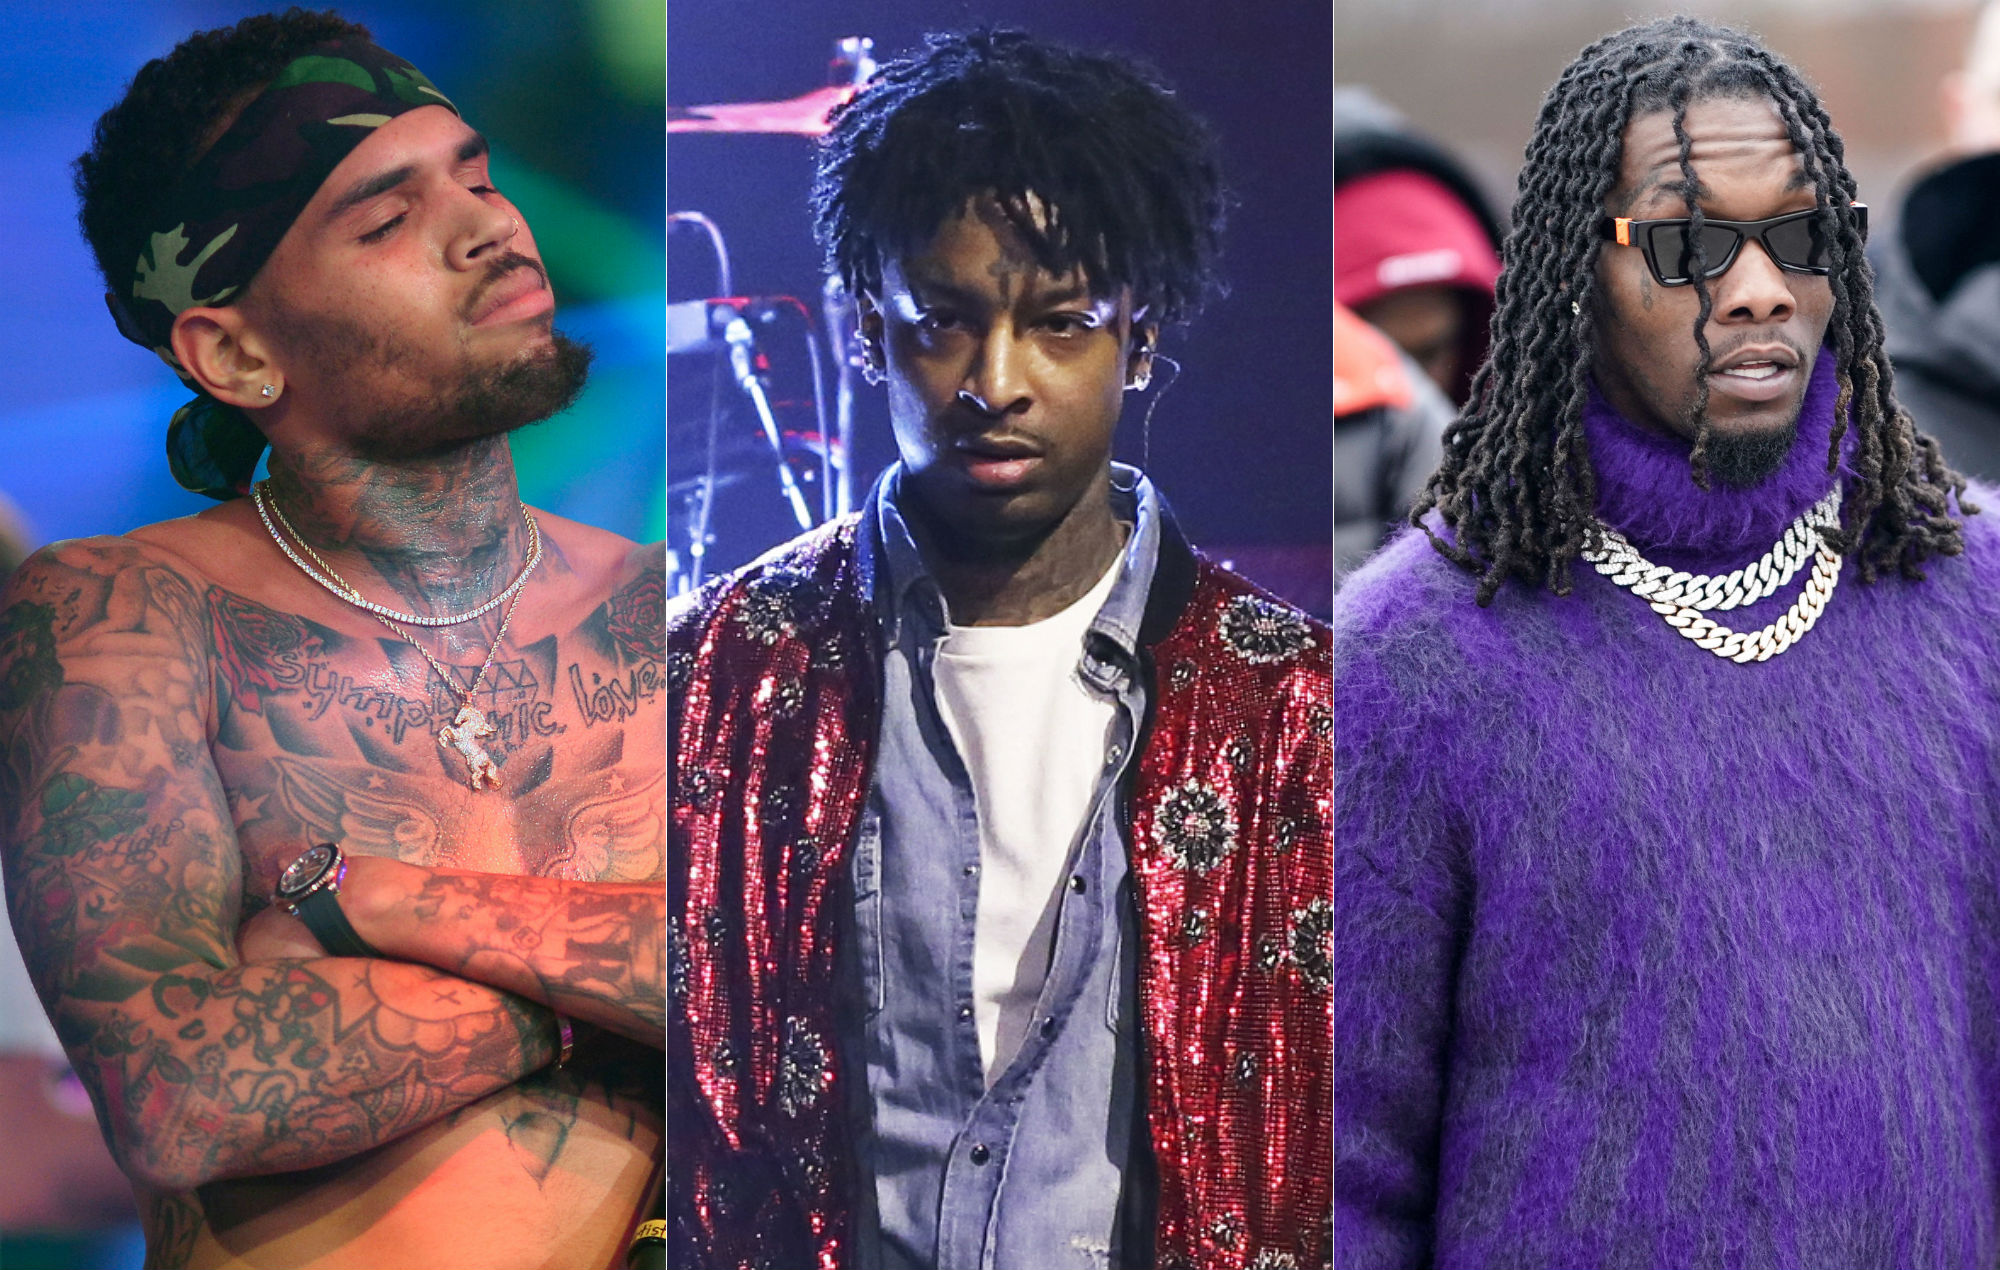 This Is Why Offset Got Cardi B Tattooed On His Neck: Offset Demands Chris Brown's Address As Their Feud Escalates